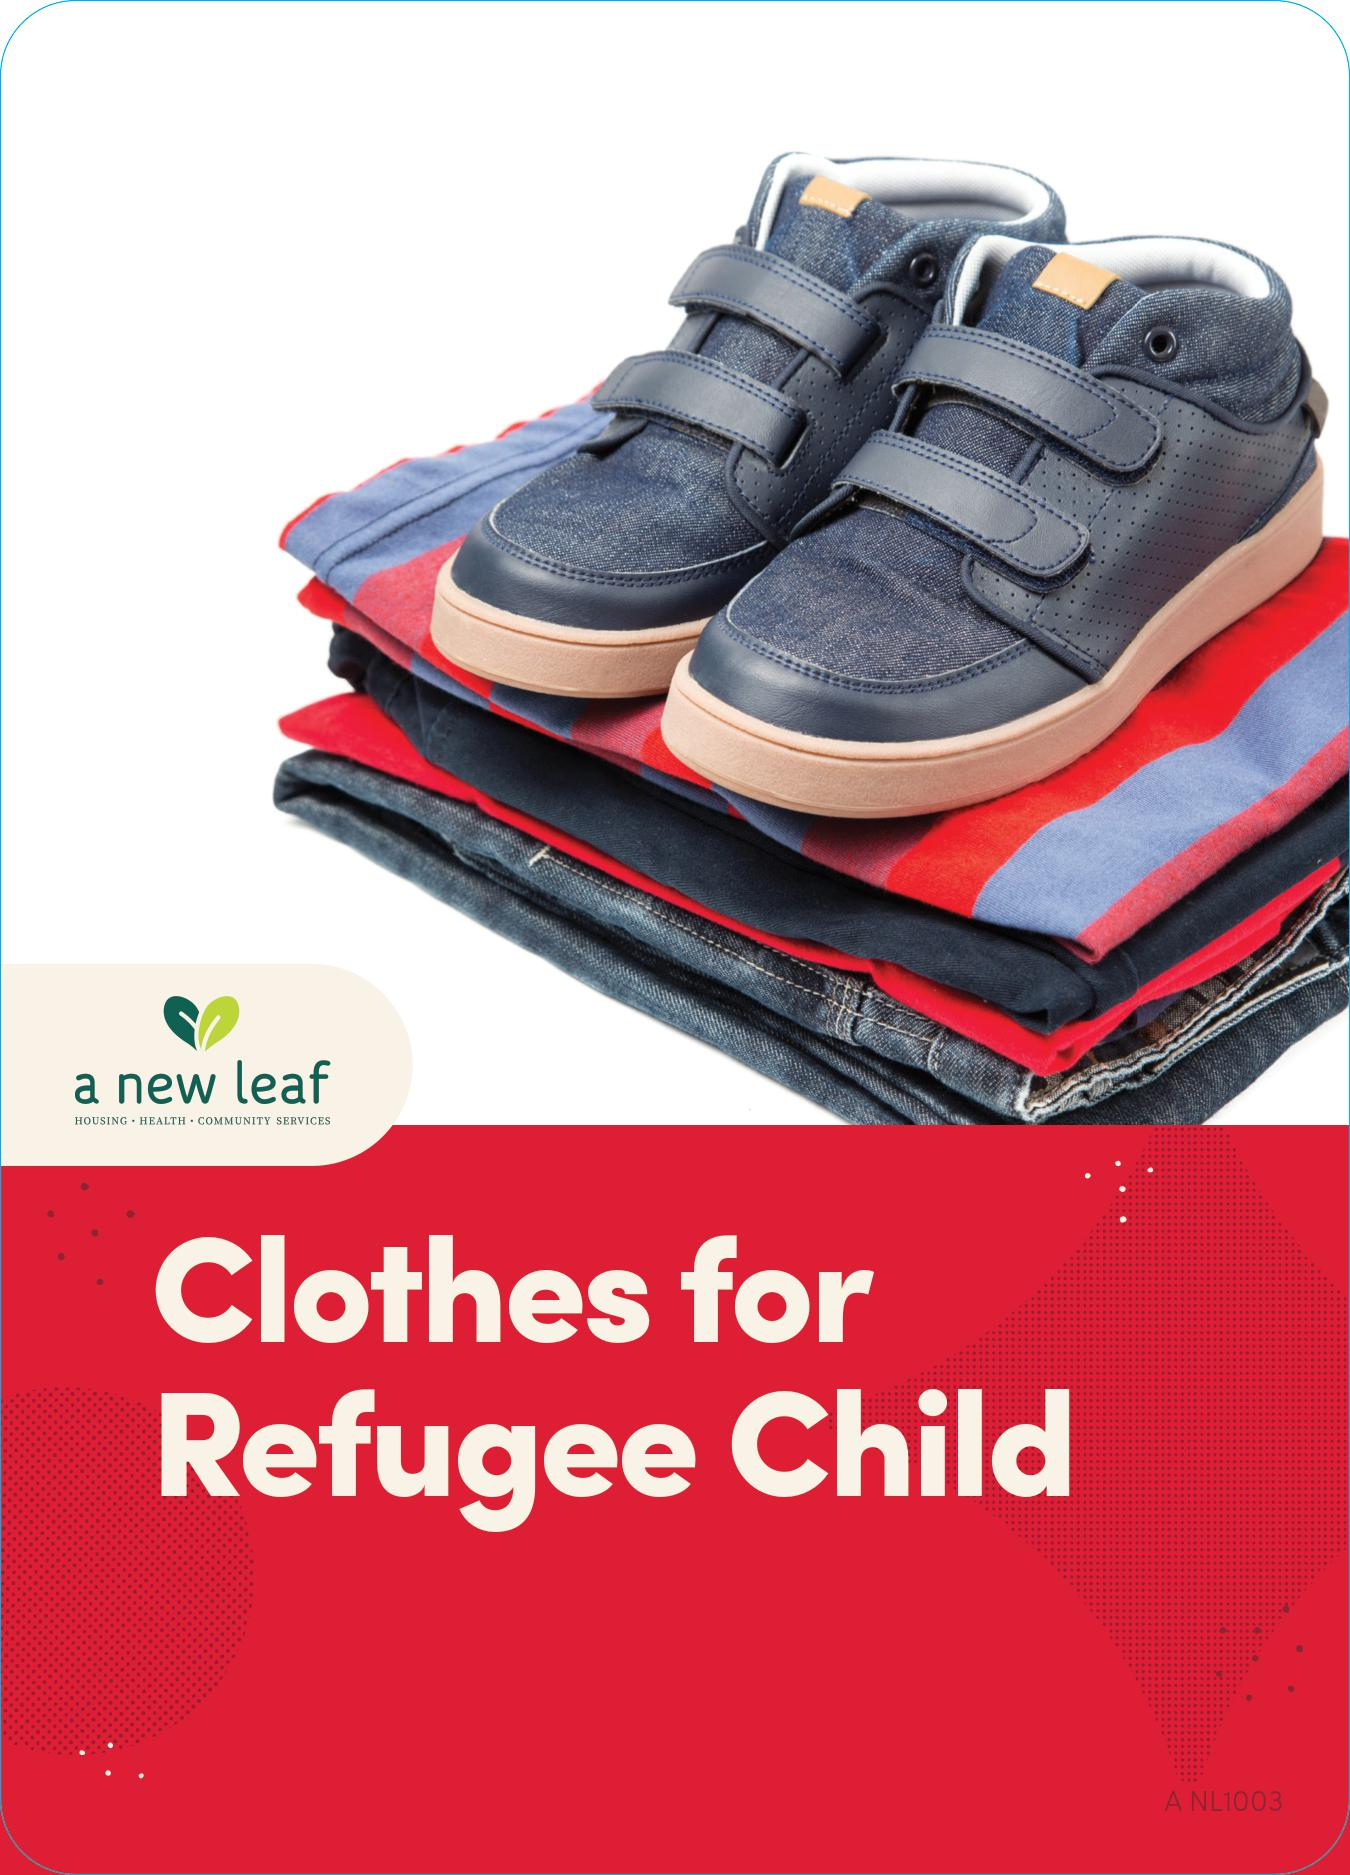 $50 - Clothes for a Refugee Child